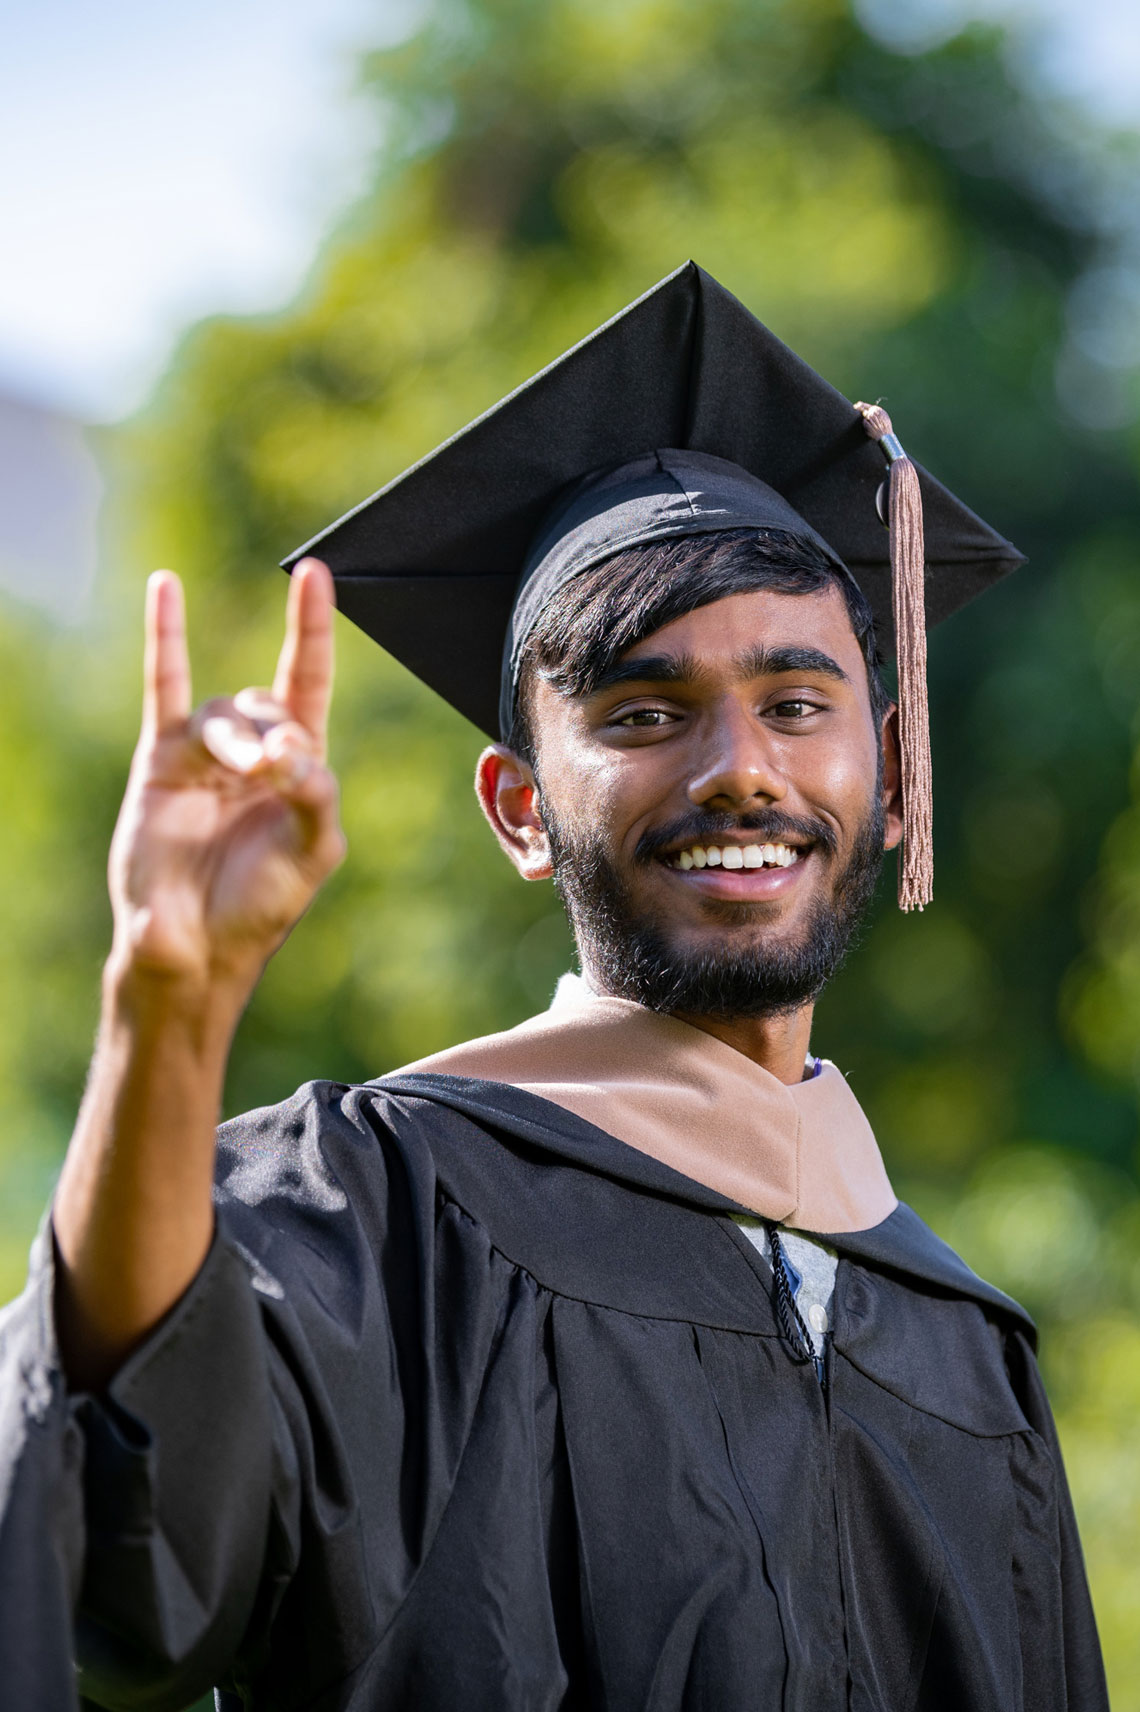 Young man outside in graduation garb giving lopes up gesture and smiling.